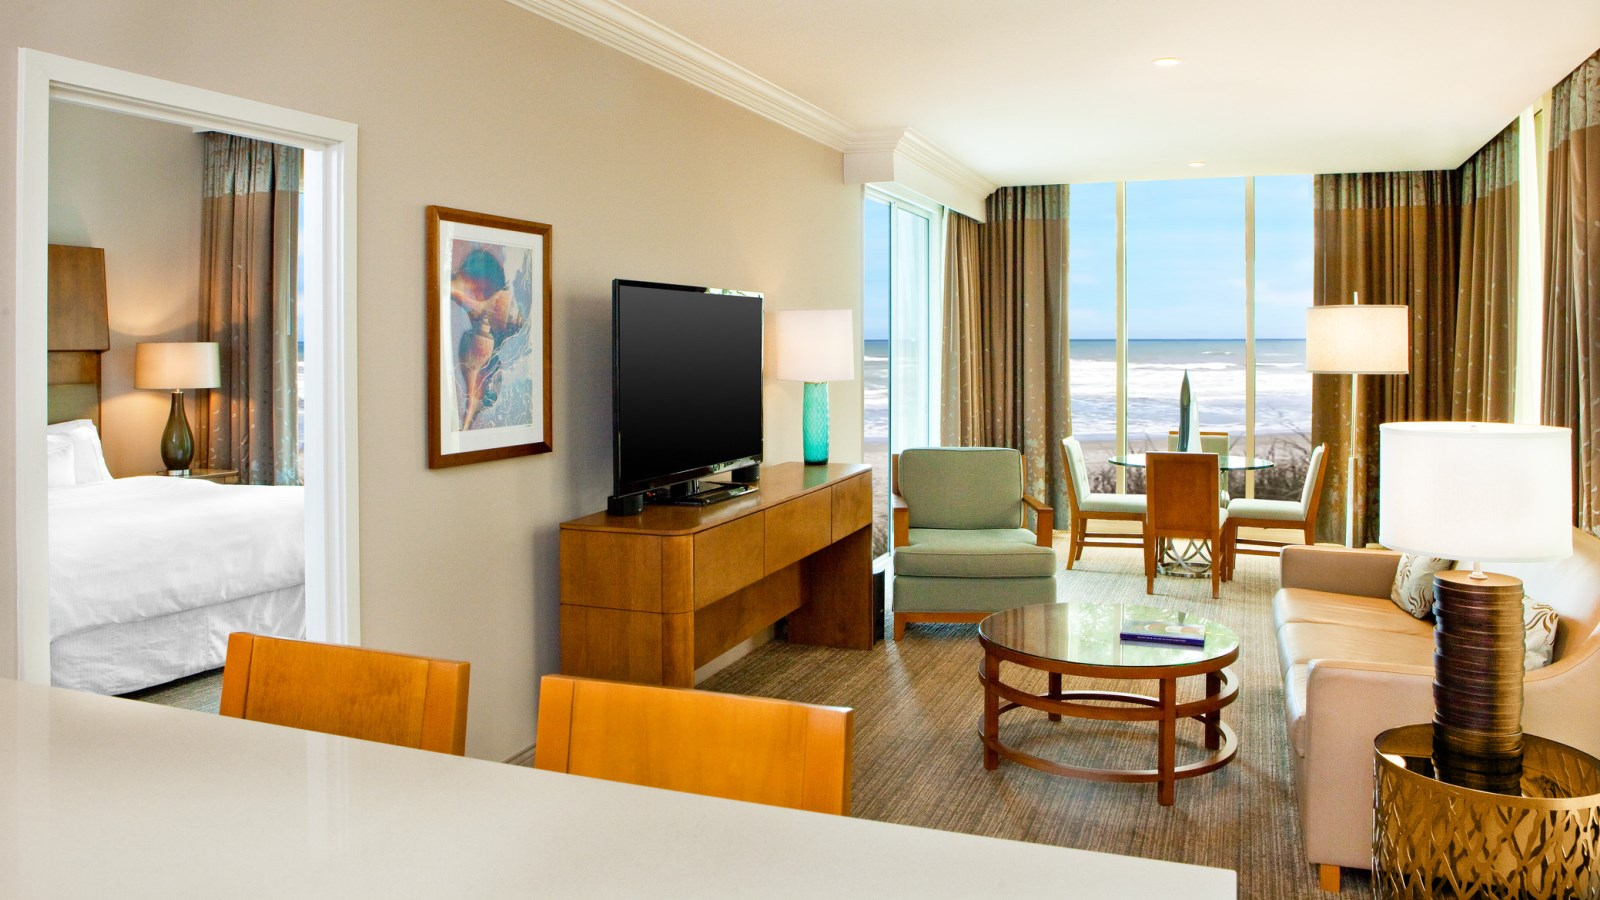 Hilton Head Hotels - The Westin - Hilton Head Suite Family Room